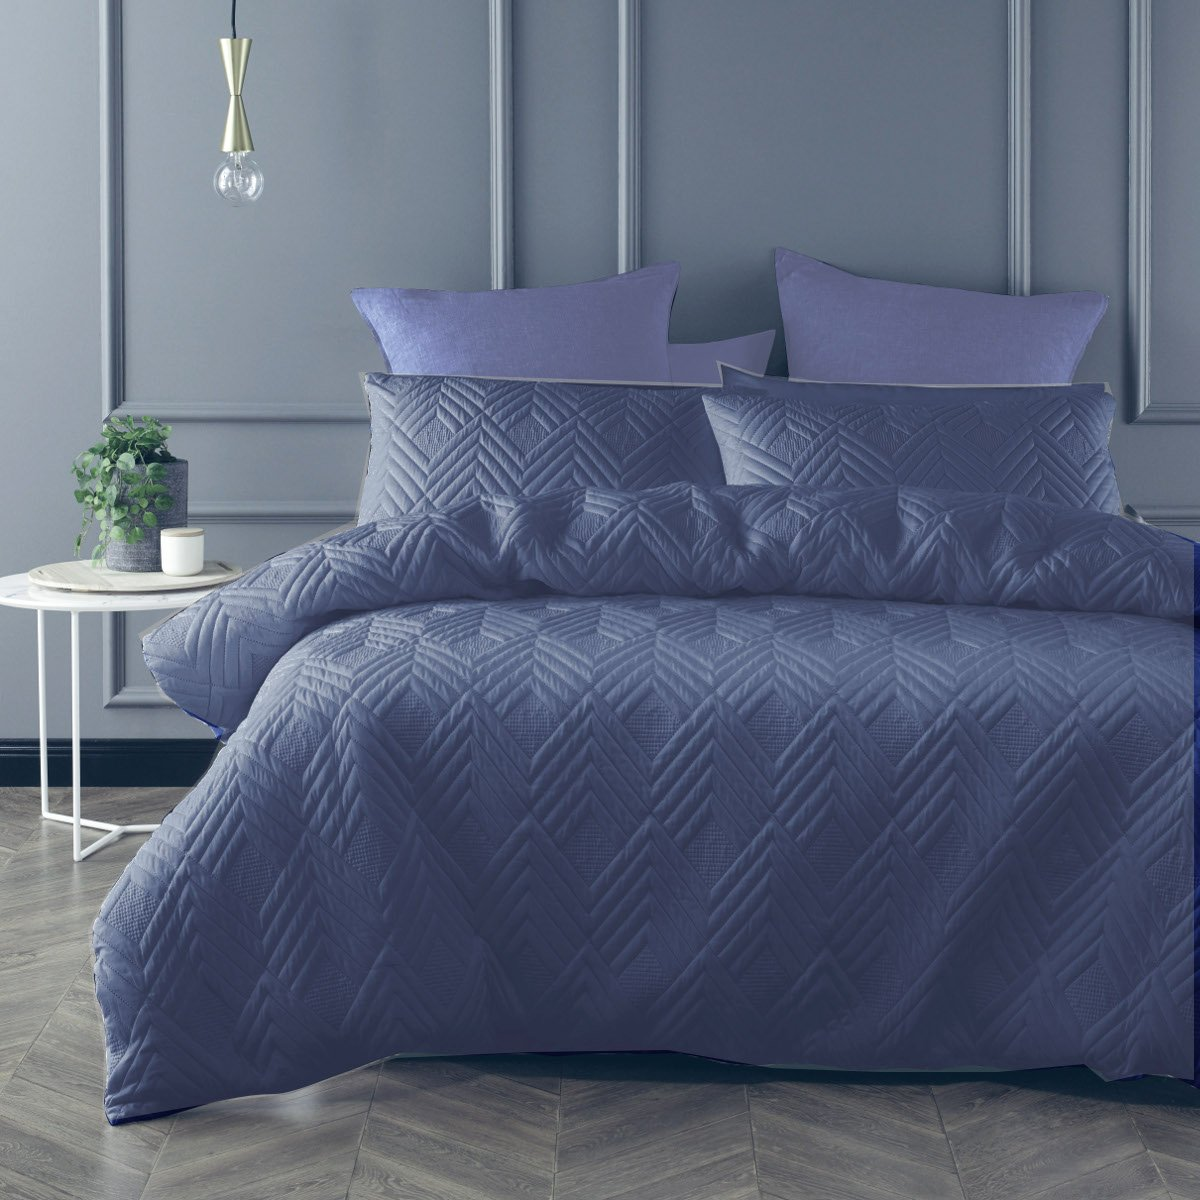 Denim Blue duvet cover set is Sophisticated, Minimal and understated addition with the quilted effect fabric.